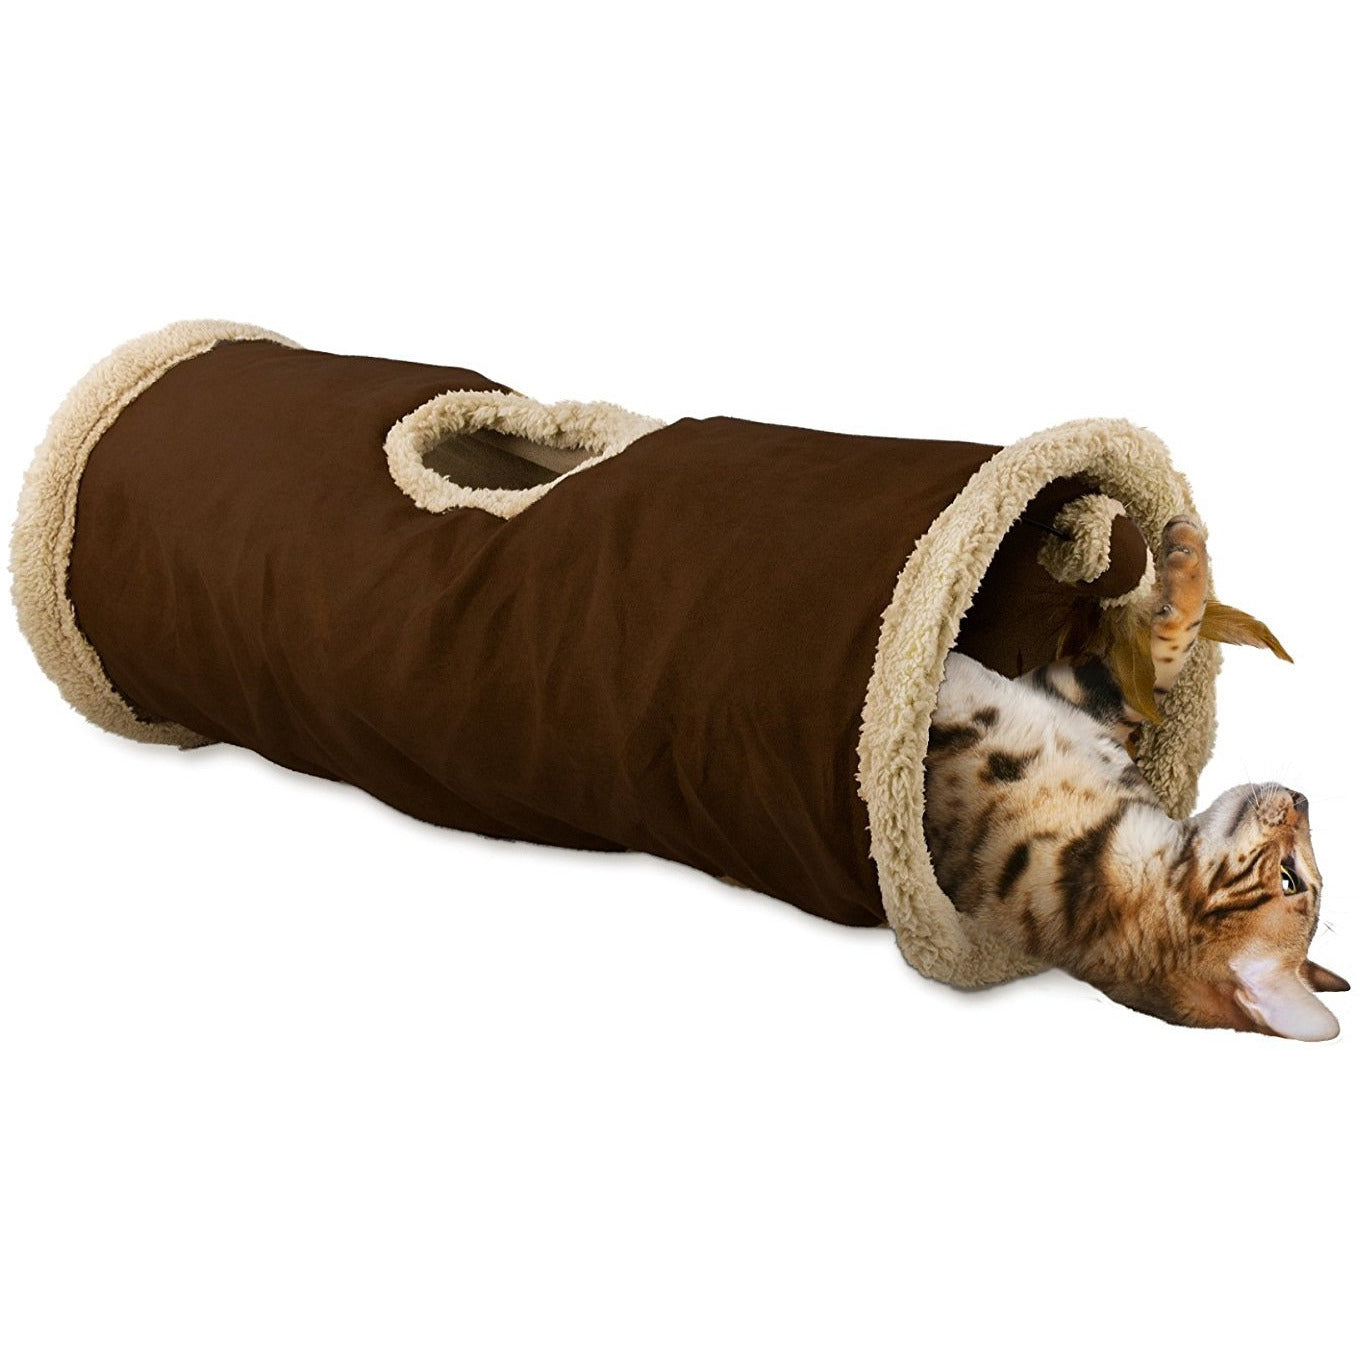 All For Paws Find Me Cat Tunnel (Brown)